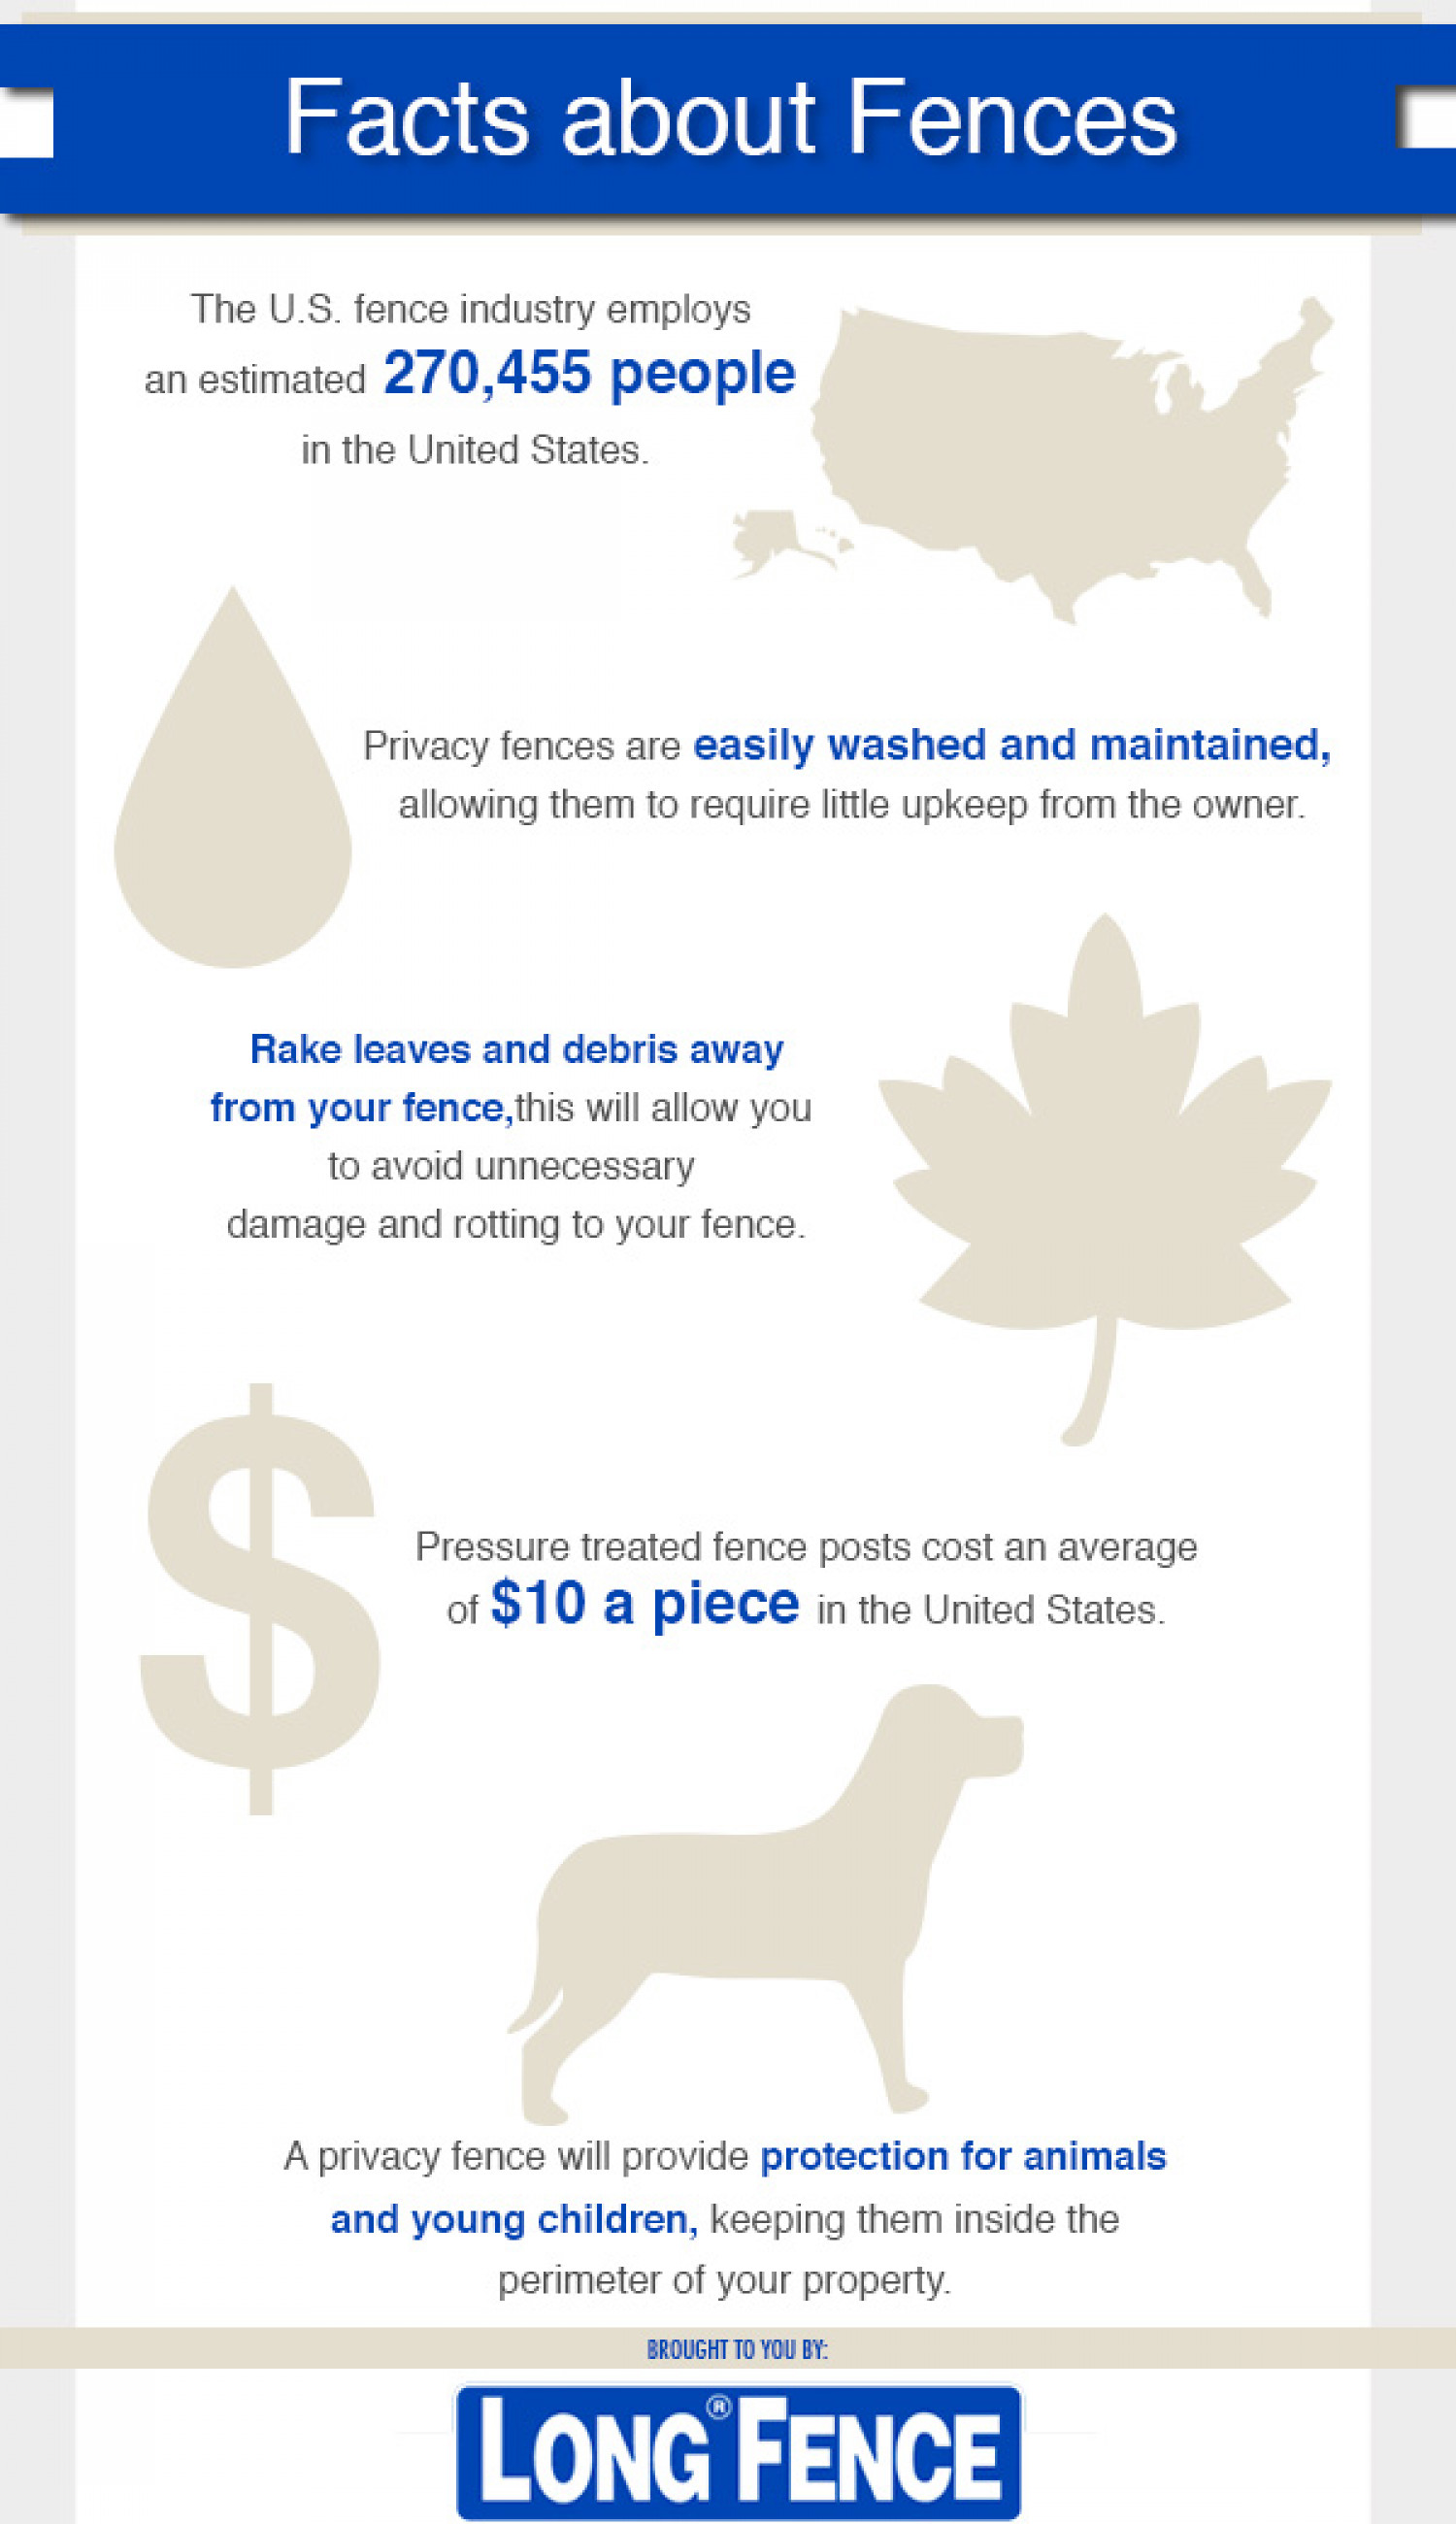 Facts About Fences Infographic